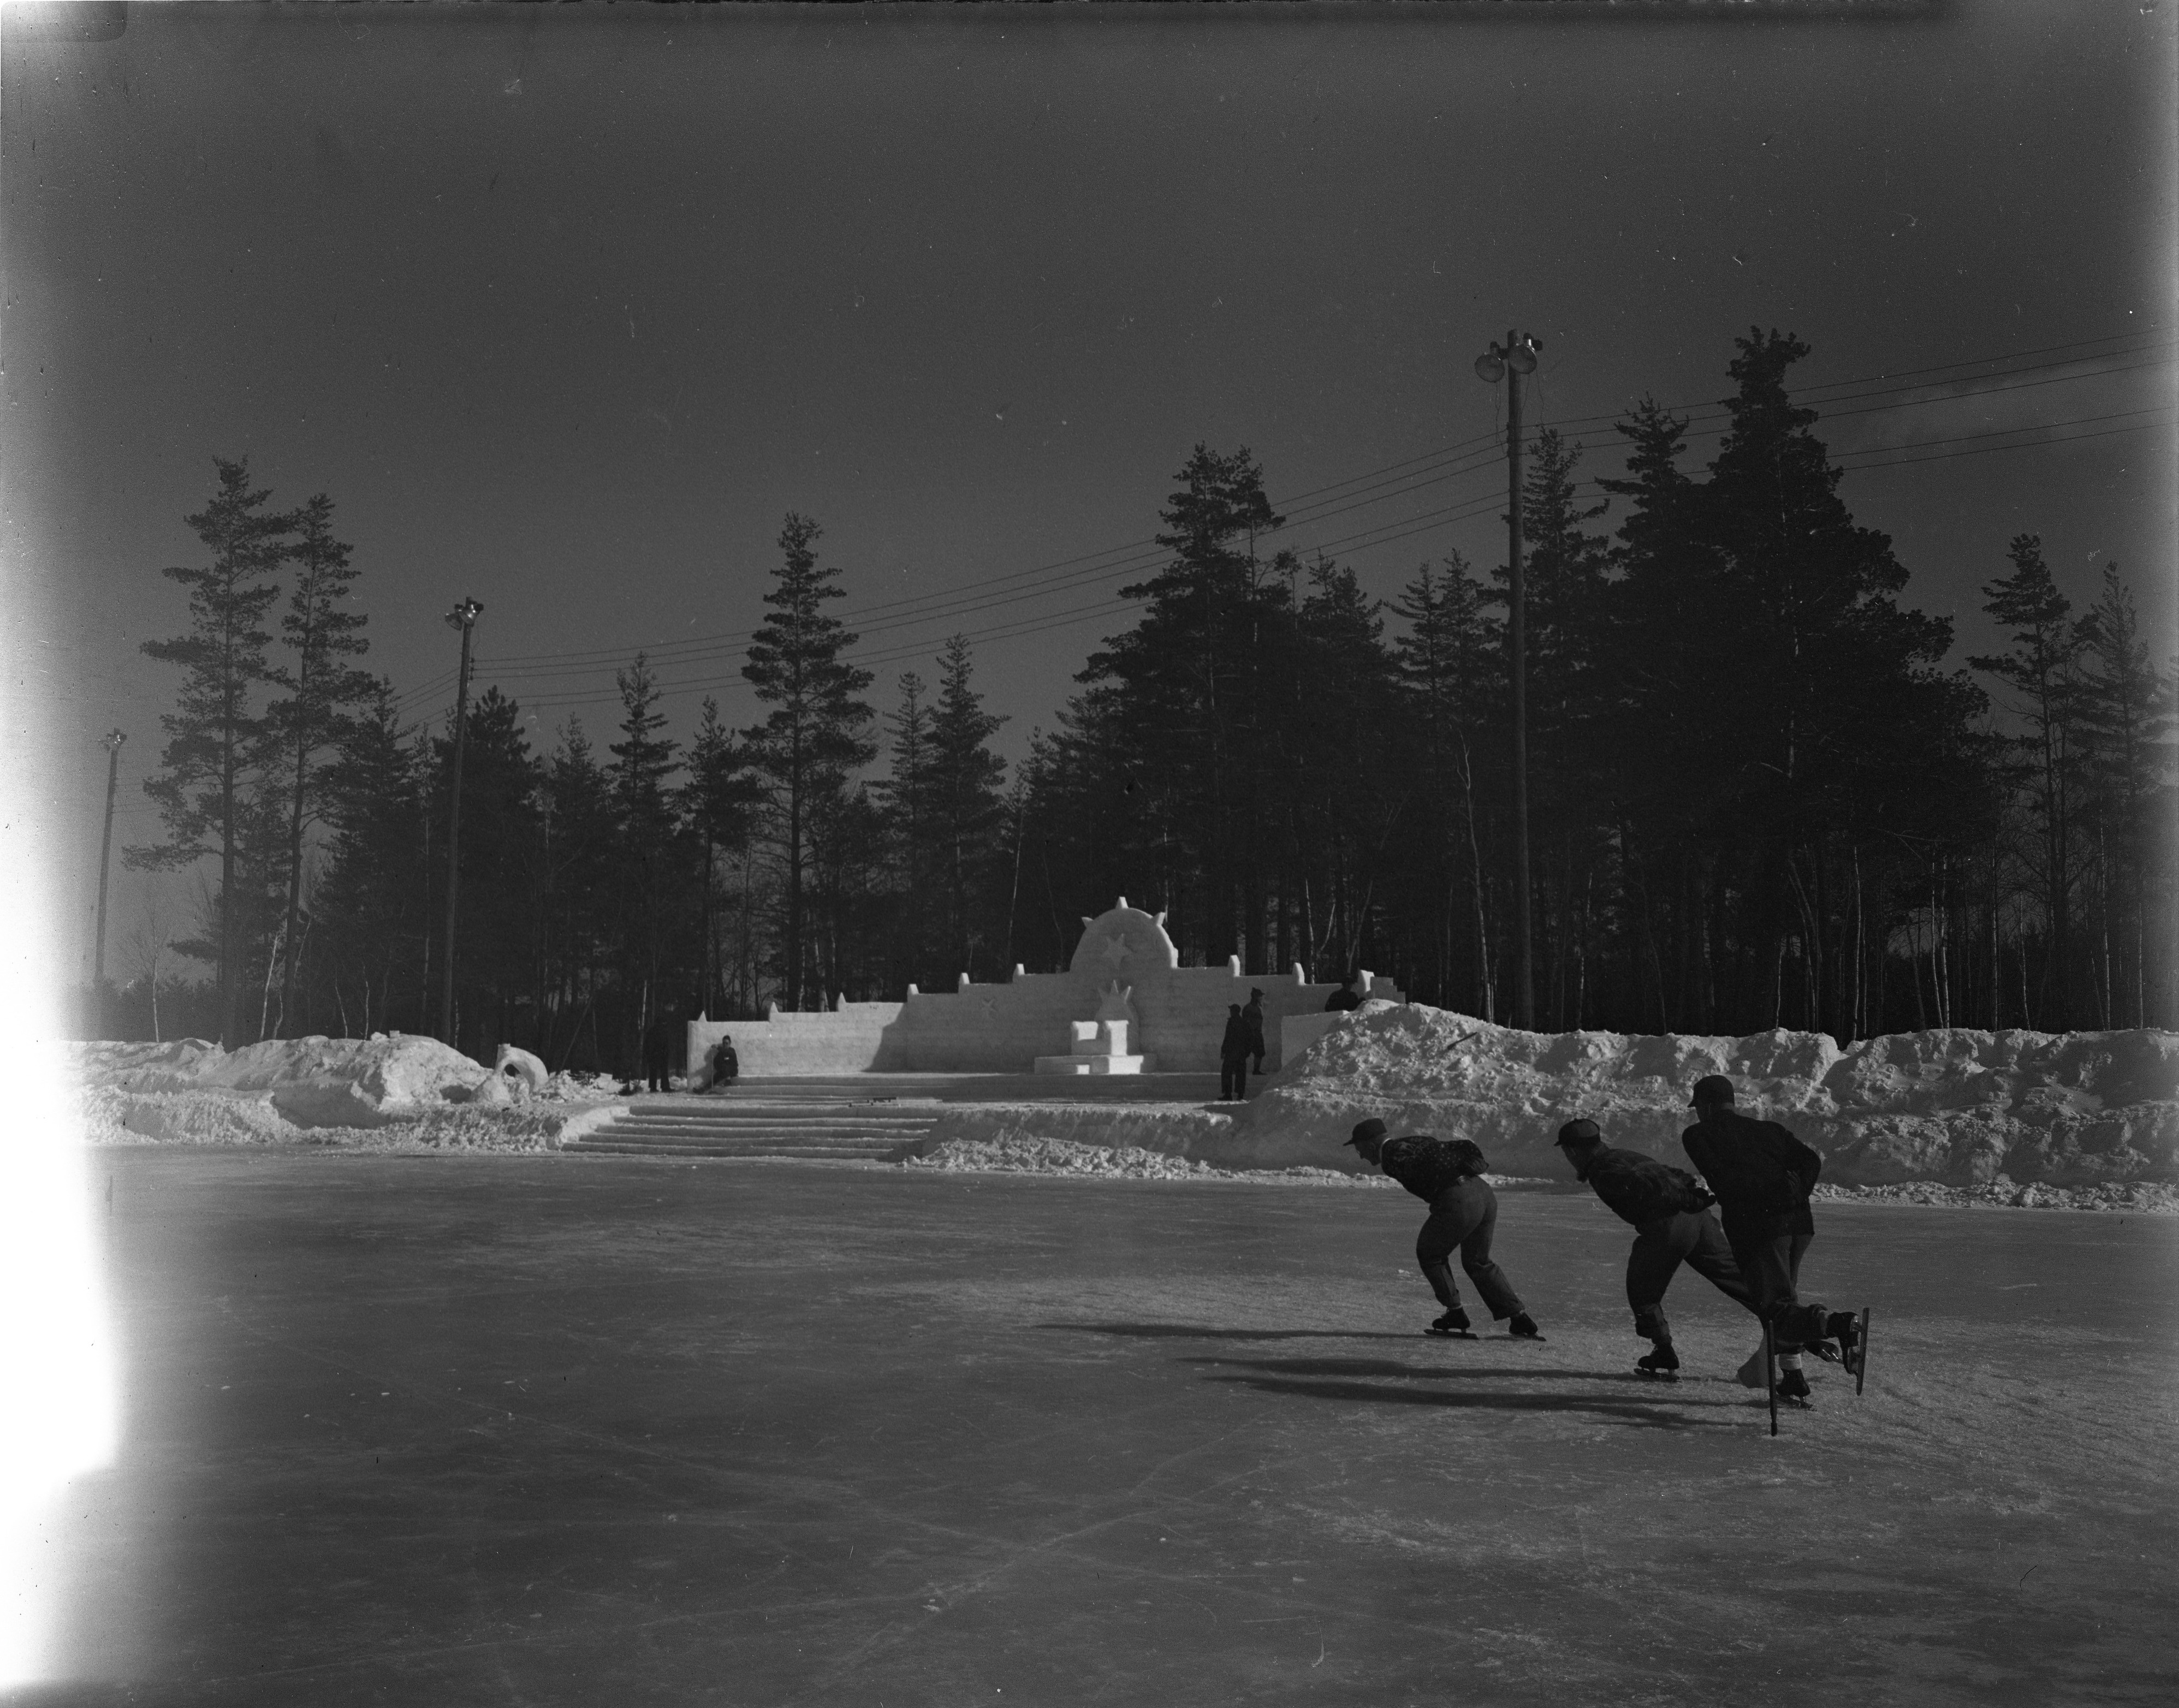 Skating Rink And Winter Carnival Throne At Grayling Winter Sports Area, February 1946 image